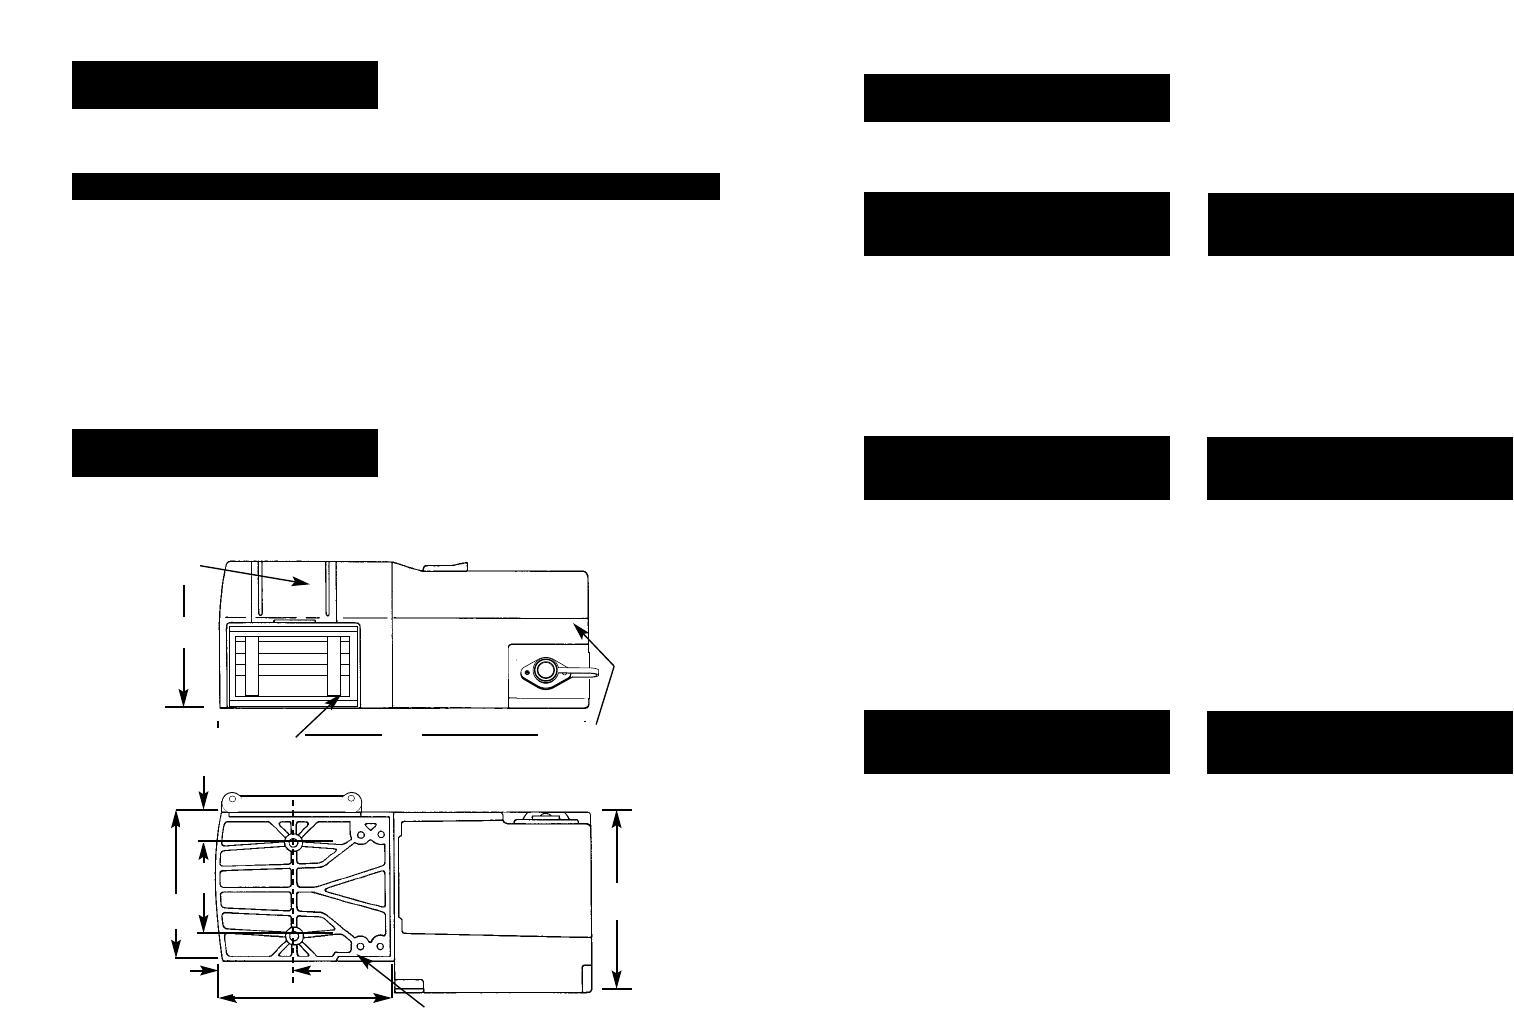 hight resolution of superwinch s3000 s4000 s5000 owners manual page 3